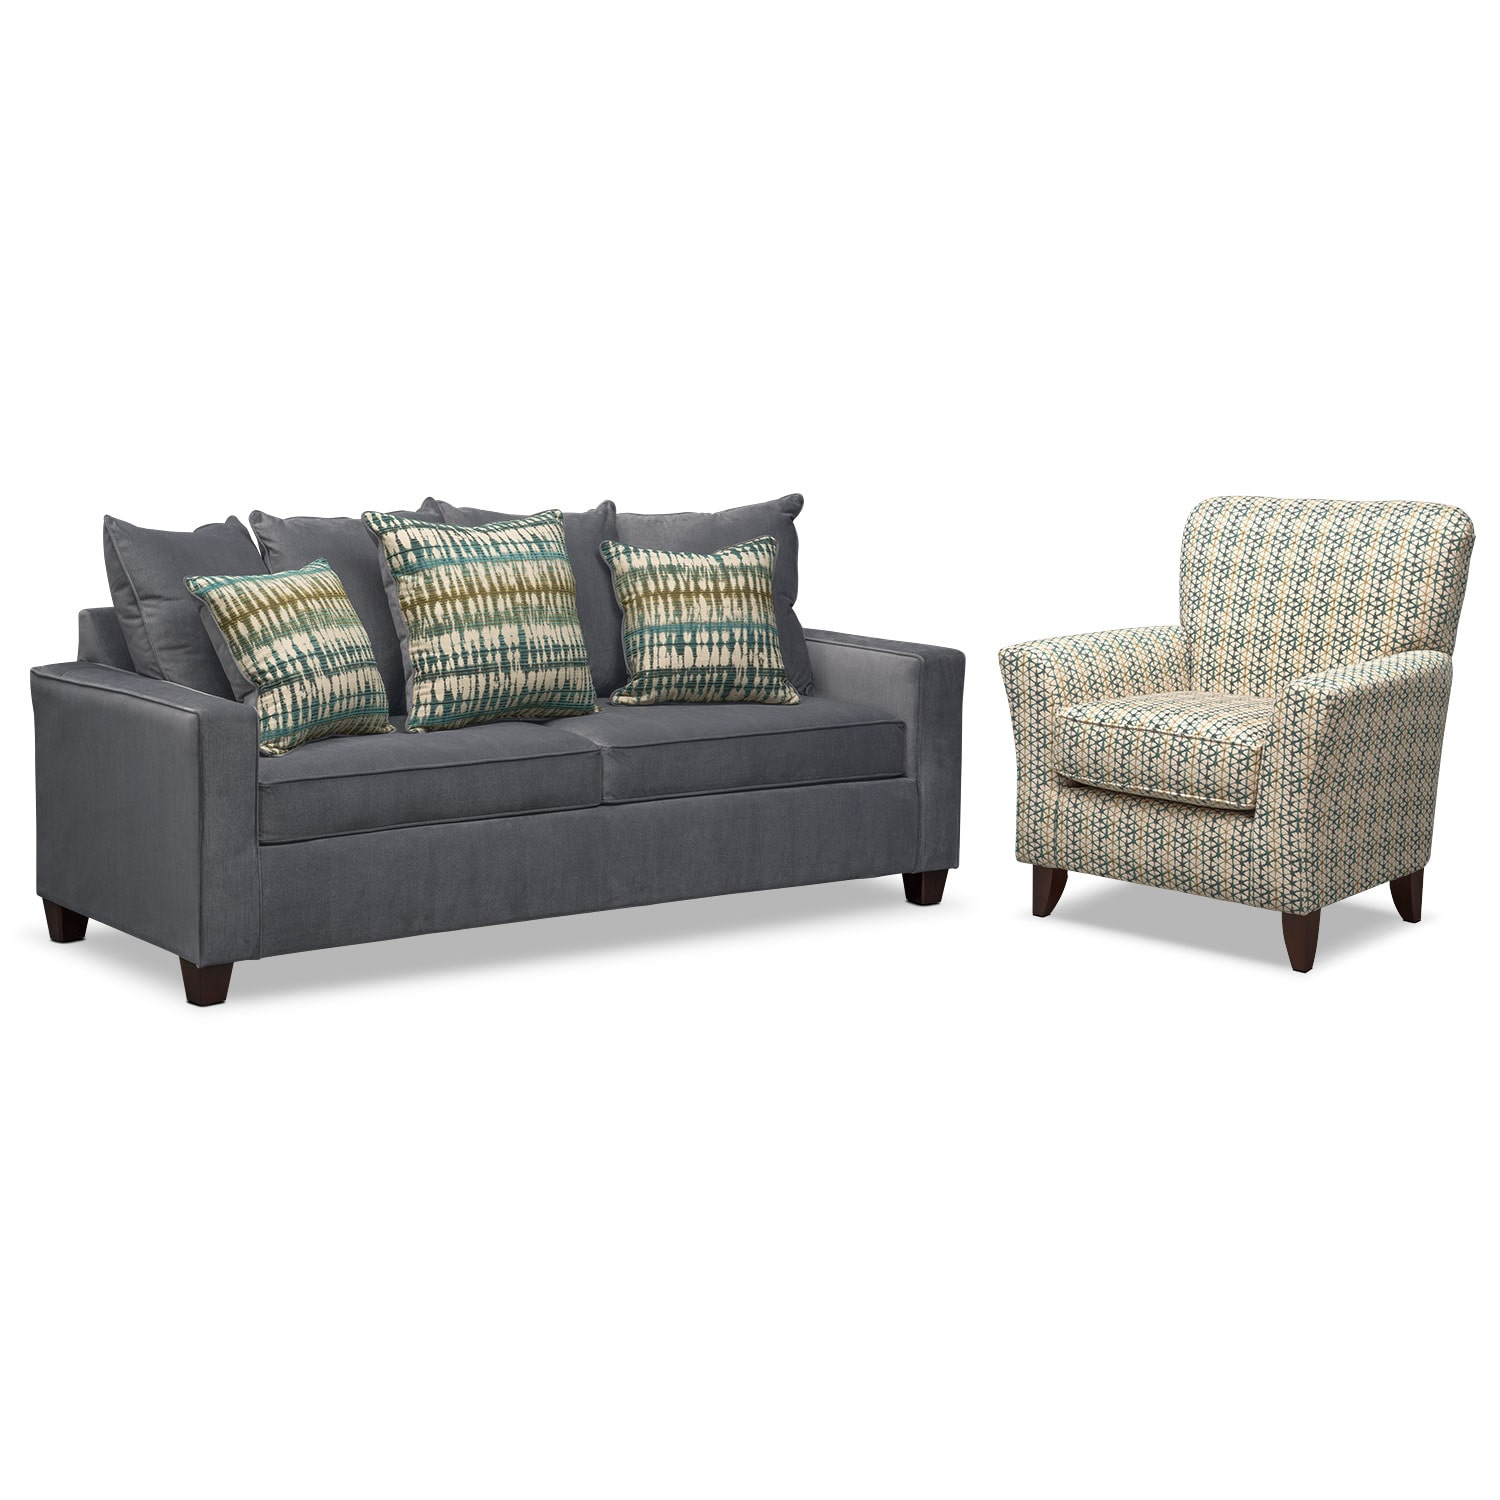 Living Room Furniture - Bryden Sofa and Accent Chair Set